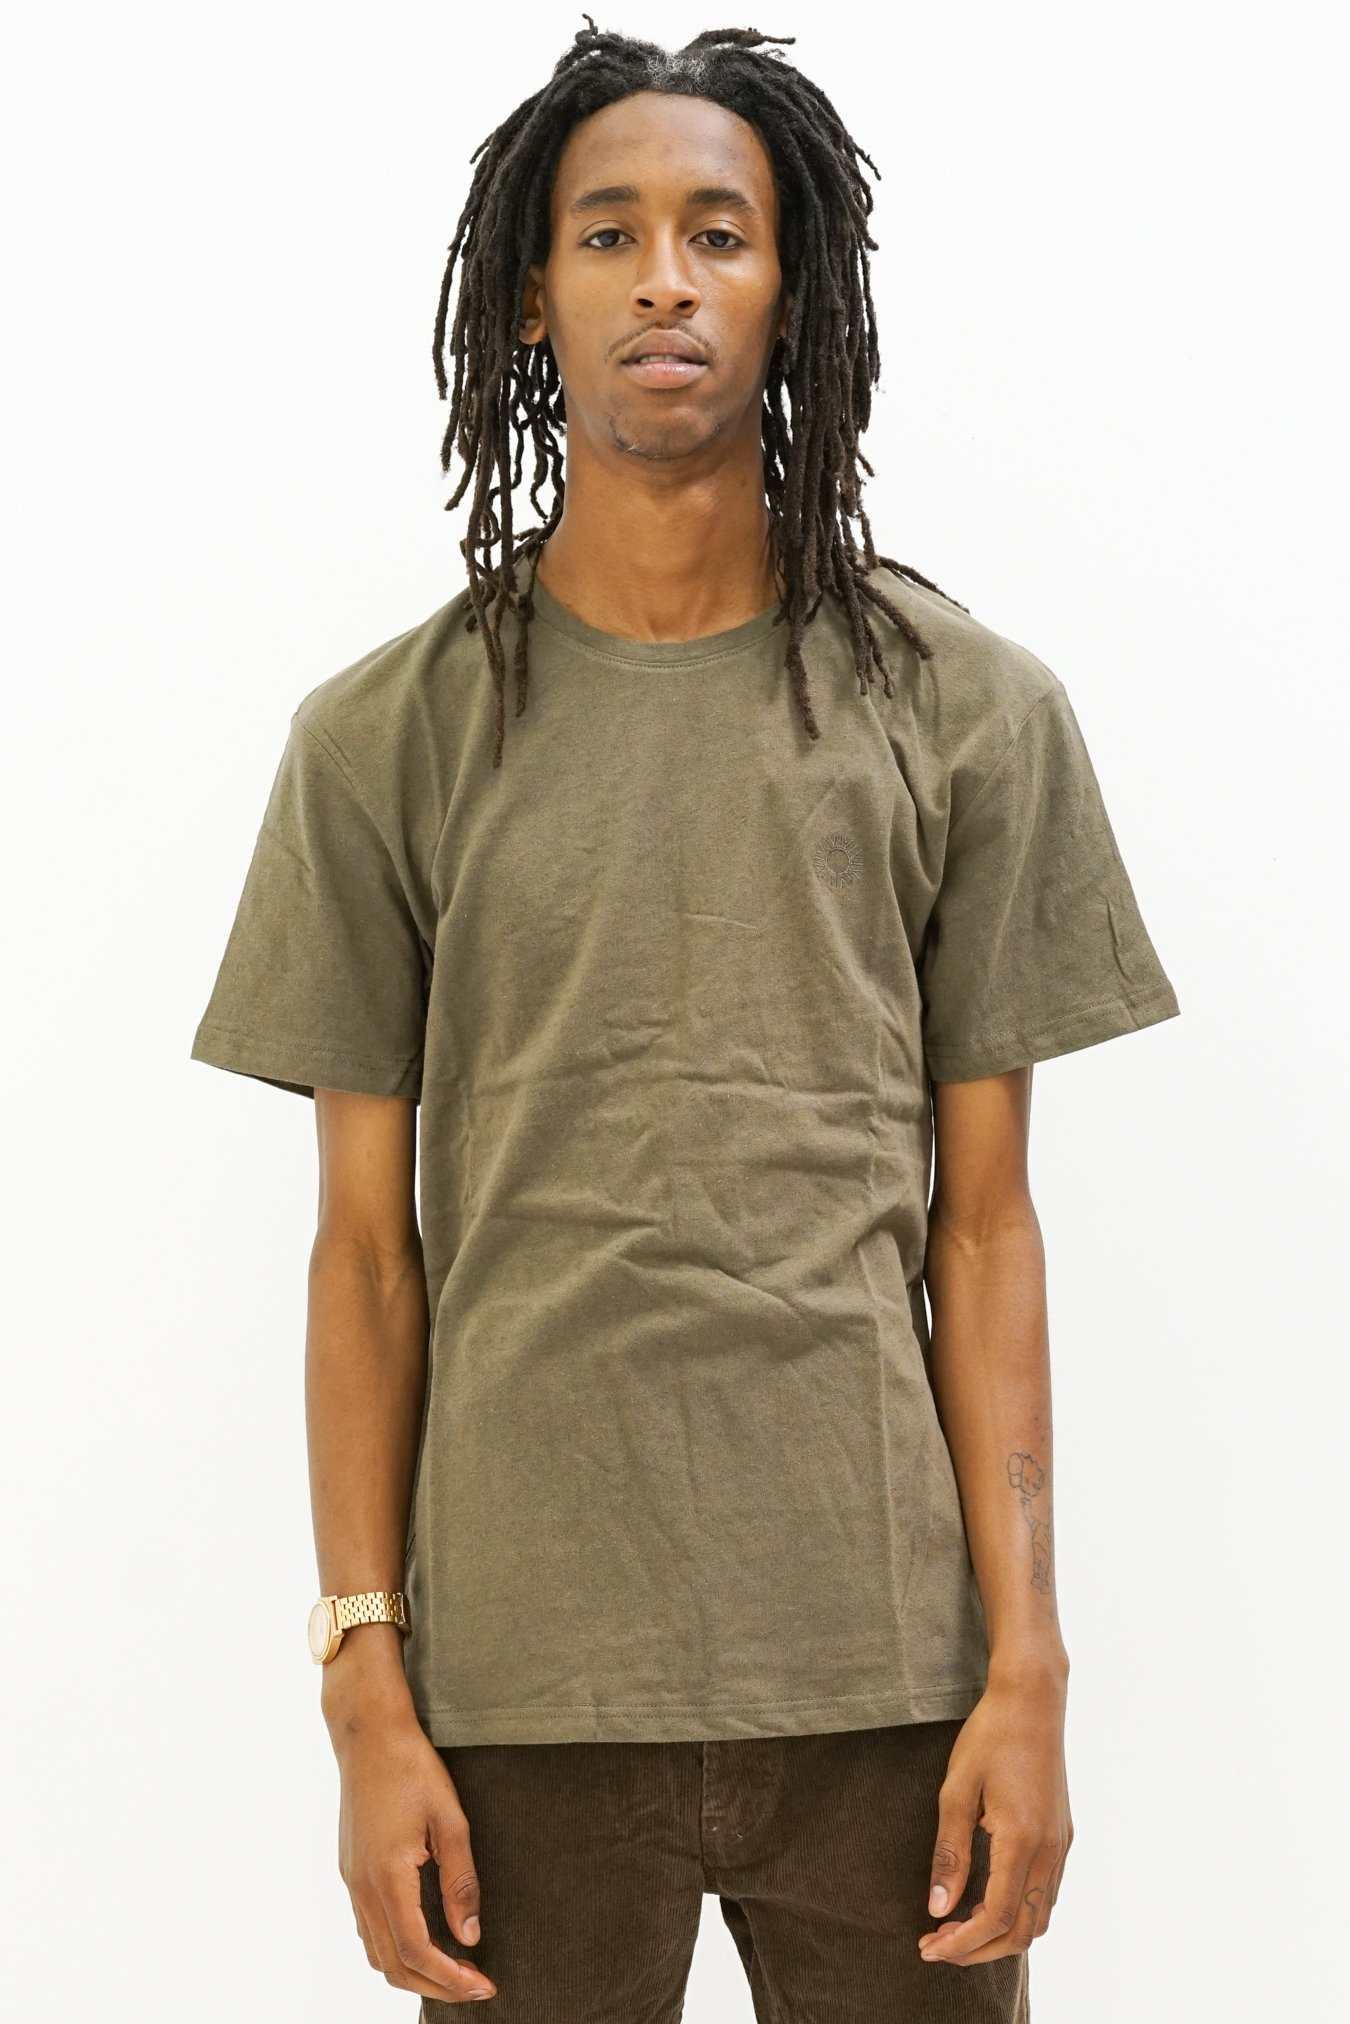 Image of Premium Linen Embroidered T-Shirt in Olive